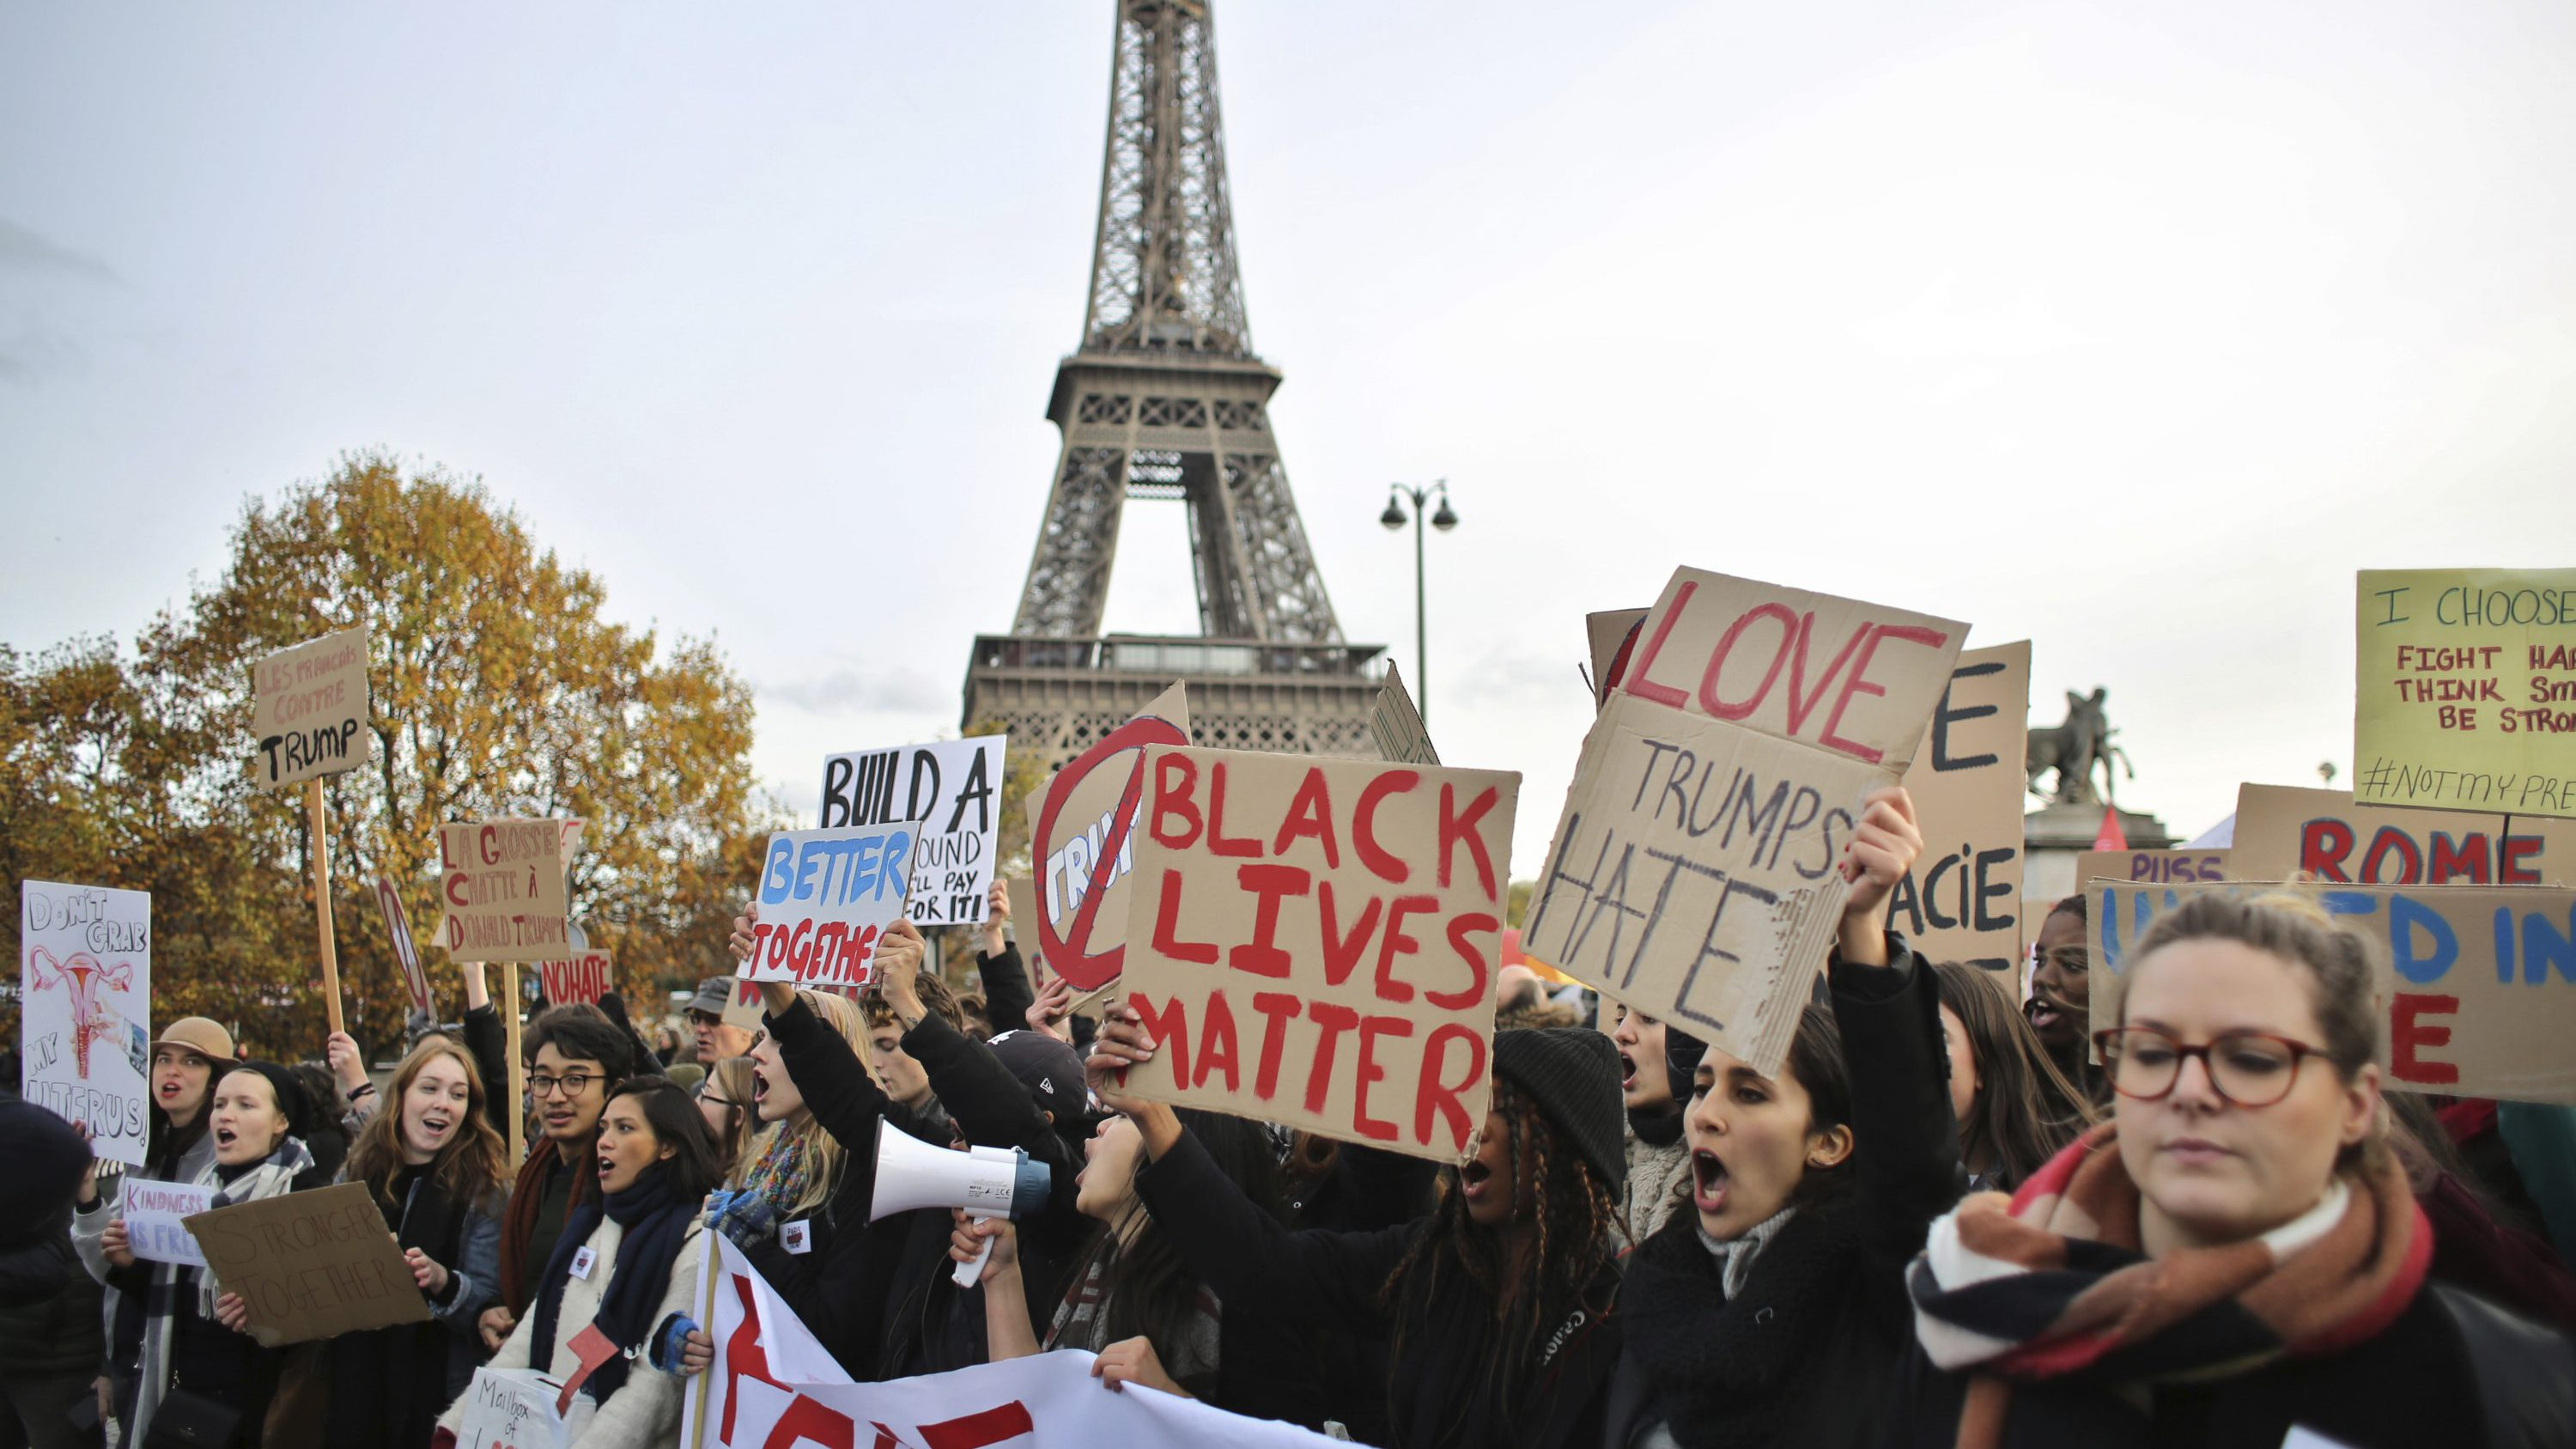 People hold banners and shout slogans against President-elect Donald Trump, in Paris, Saturday, Nov. 19, 2016. A few hundreds of critics of U.S. president-elect Donald Trump have marched through Paris to express concern about his respect for human rights, women and minorities.